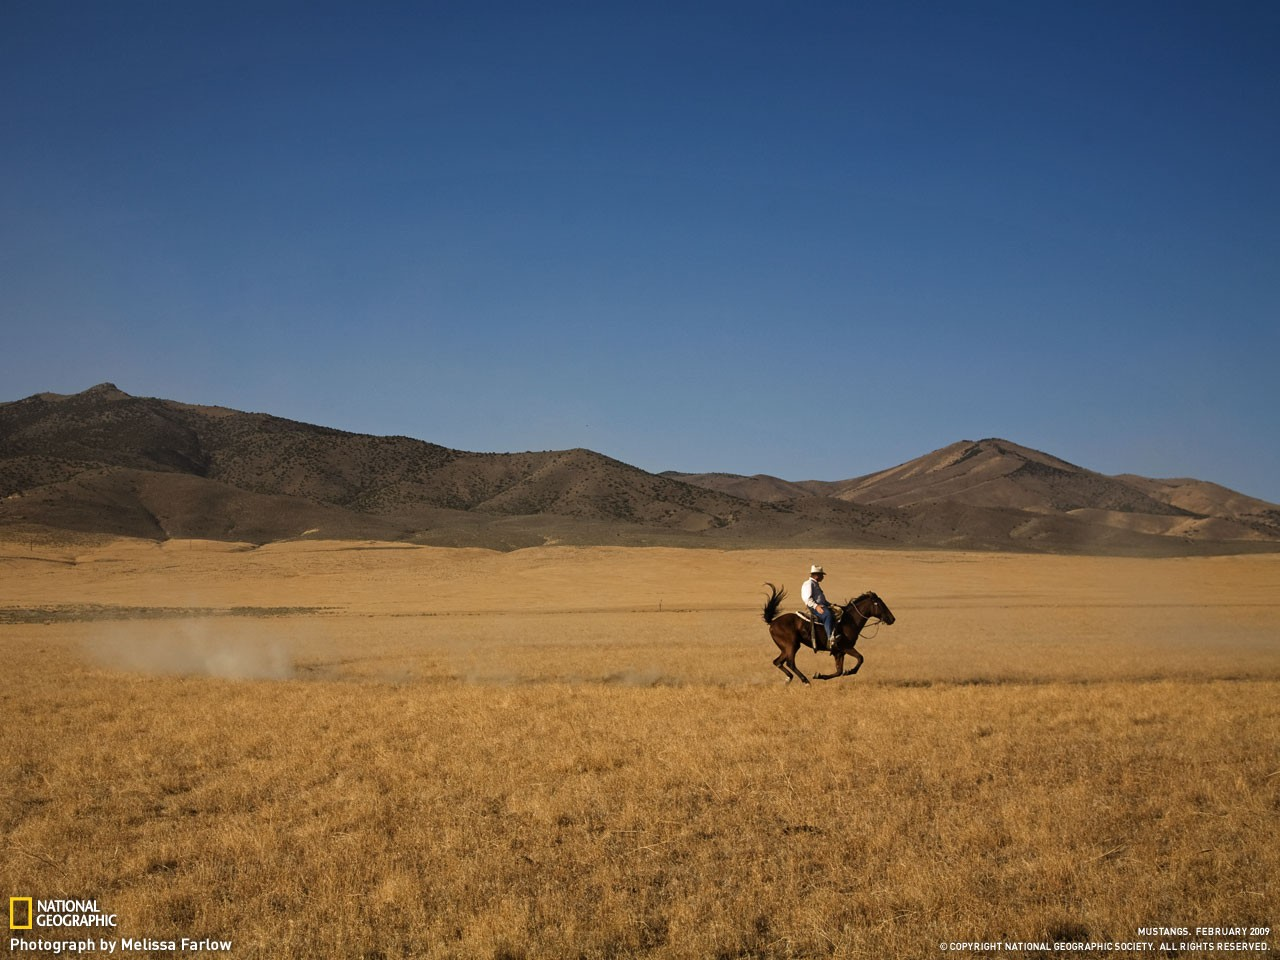 Wild Ride With Horse In Field Great Landscape